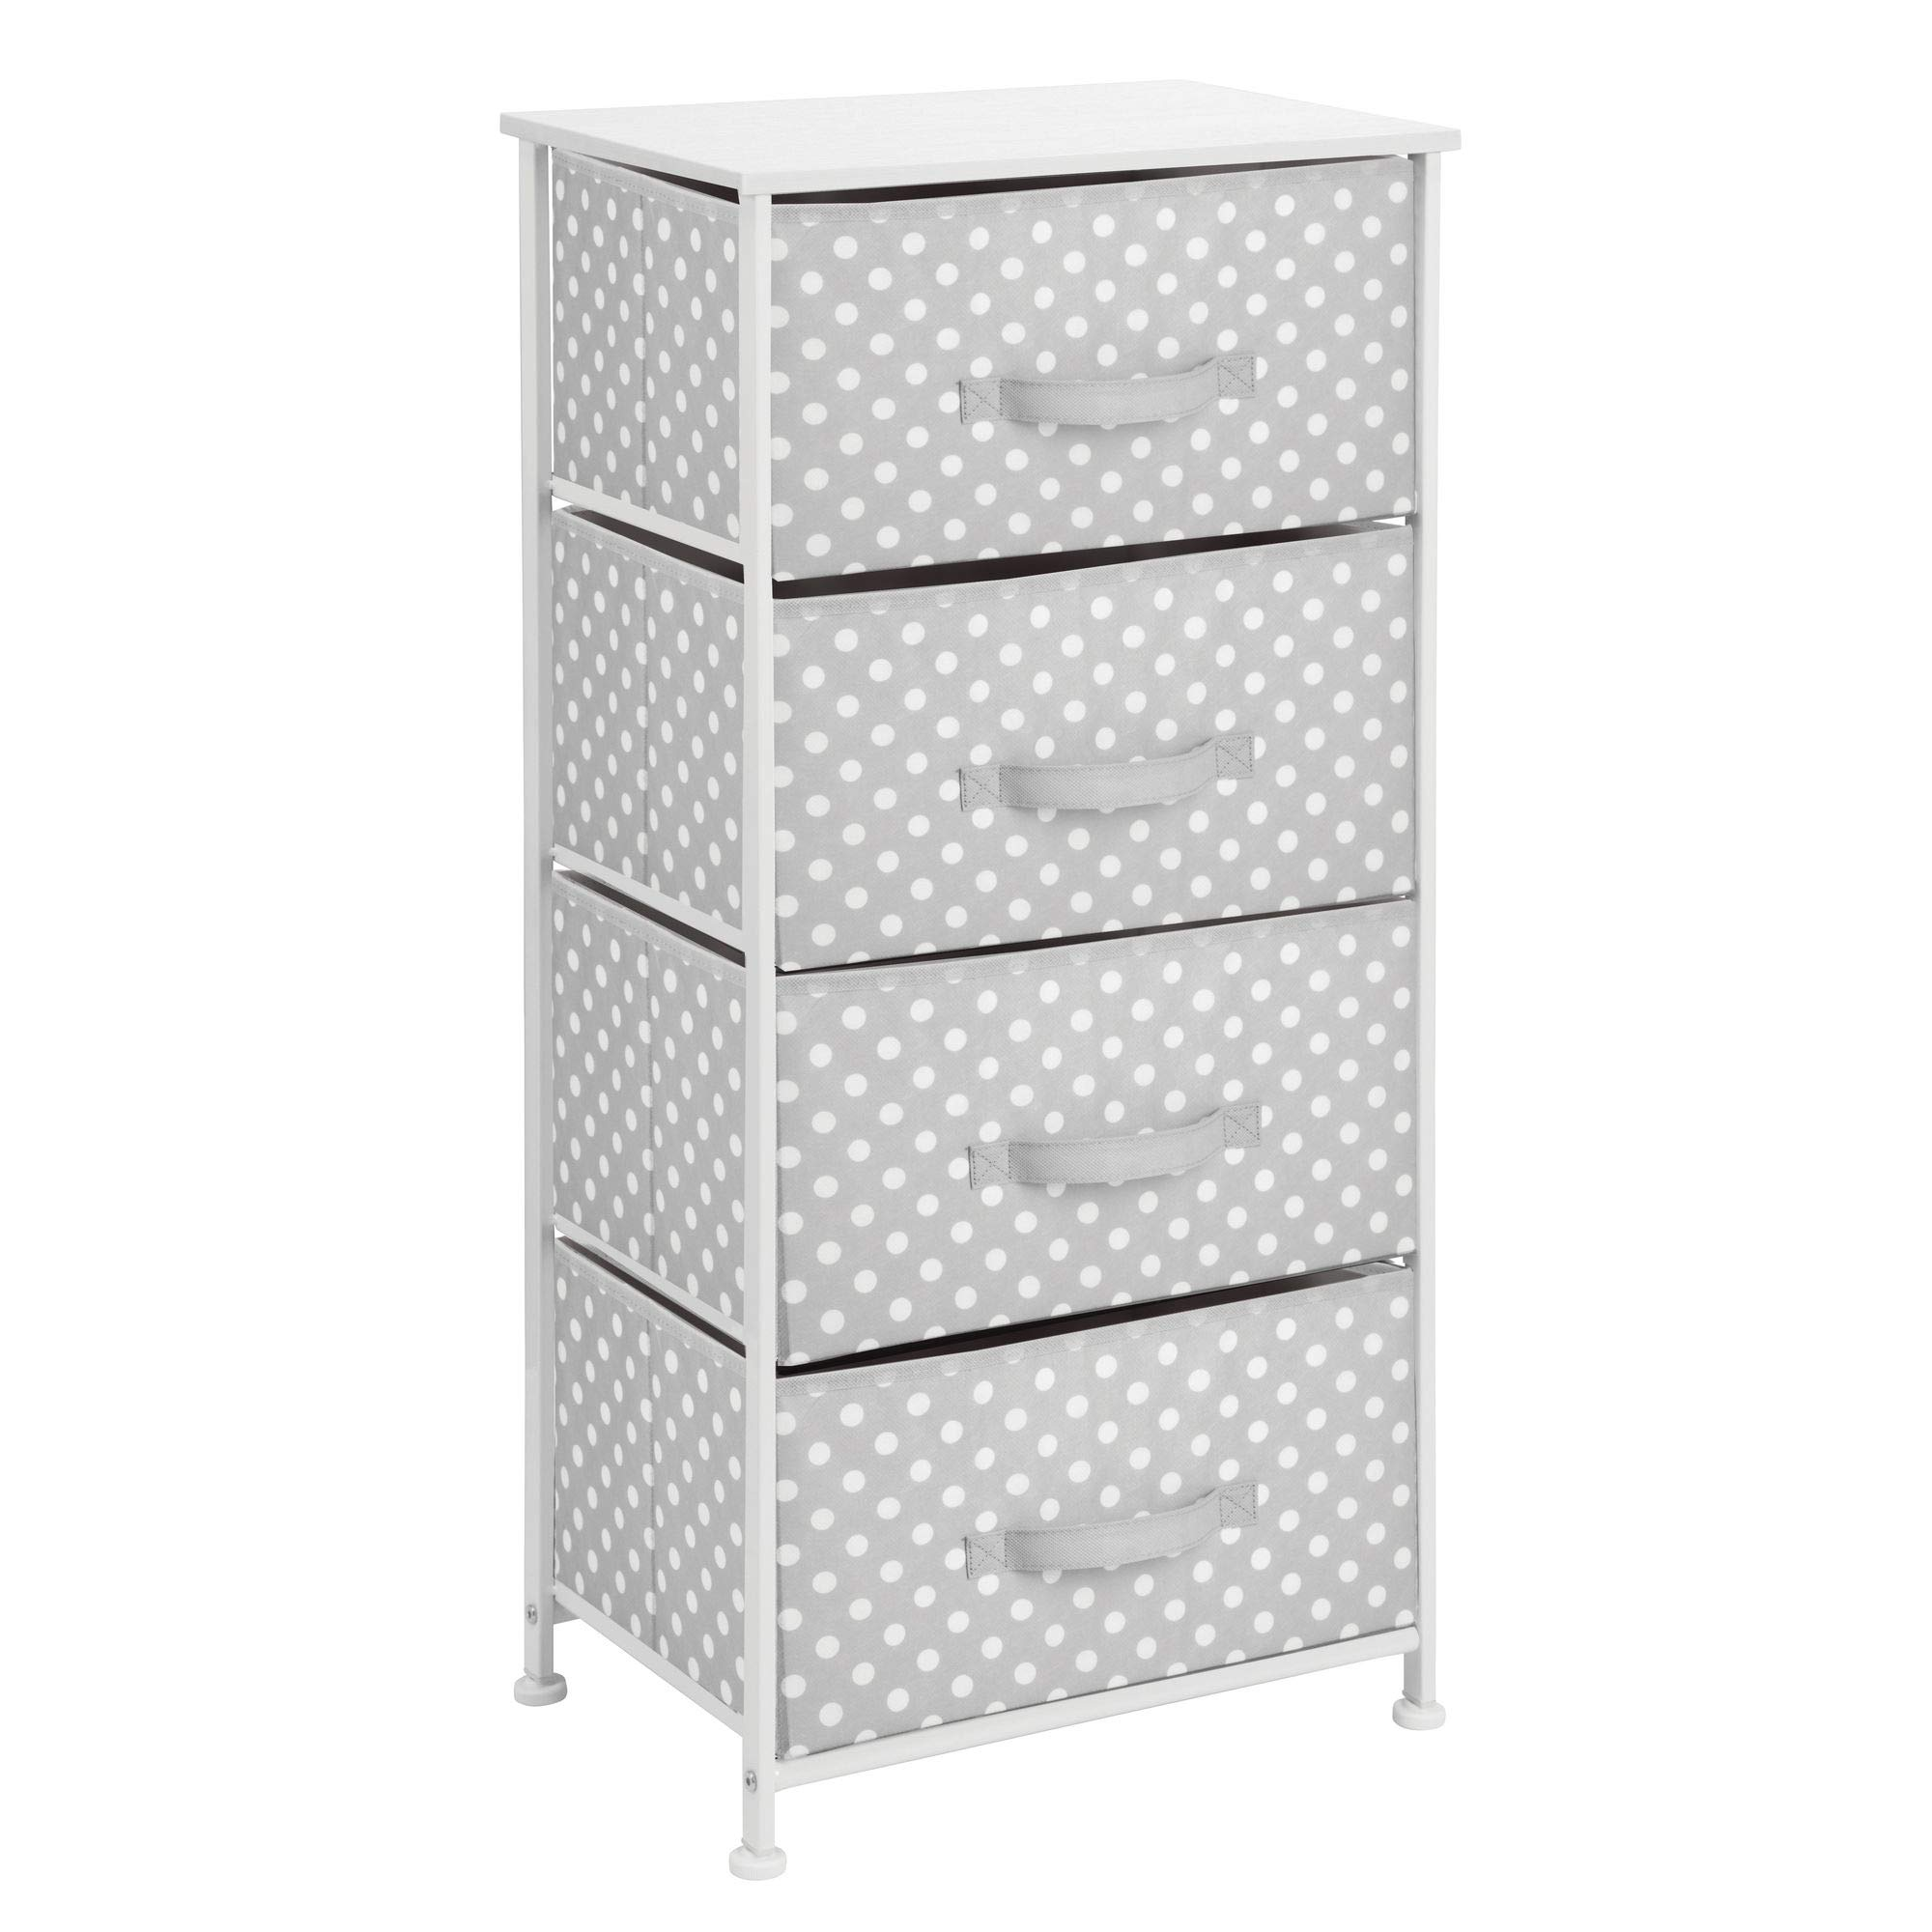 mDesign 4-Drawer Vertical Dresser Storage Tower - Sturdy Steel Frame, Wood Top and Easy Pull Fabric Bins - Multi-Bin Organizer Unit for Child/Kids Bedroom or Nursery - Light Gray with White Polka Dots by mDesign (Image #4)